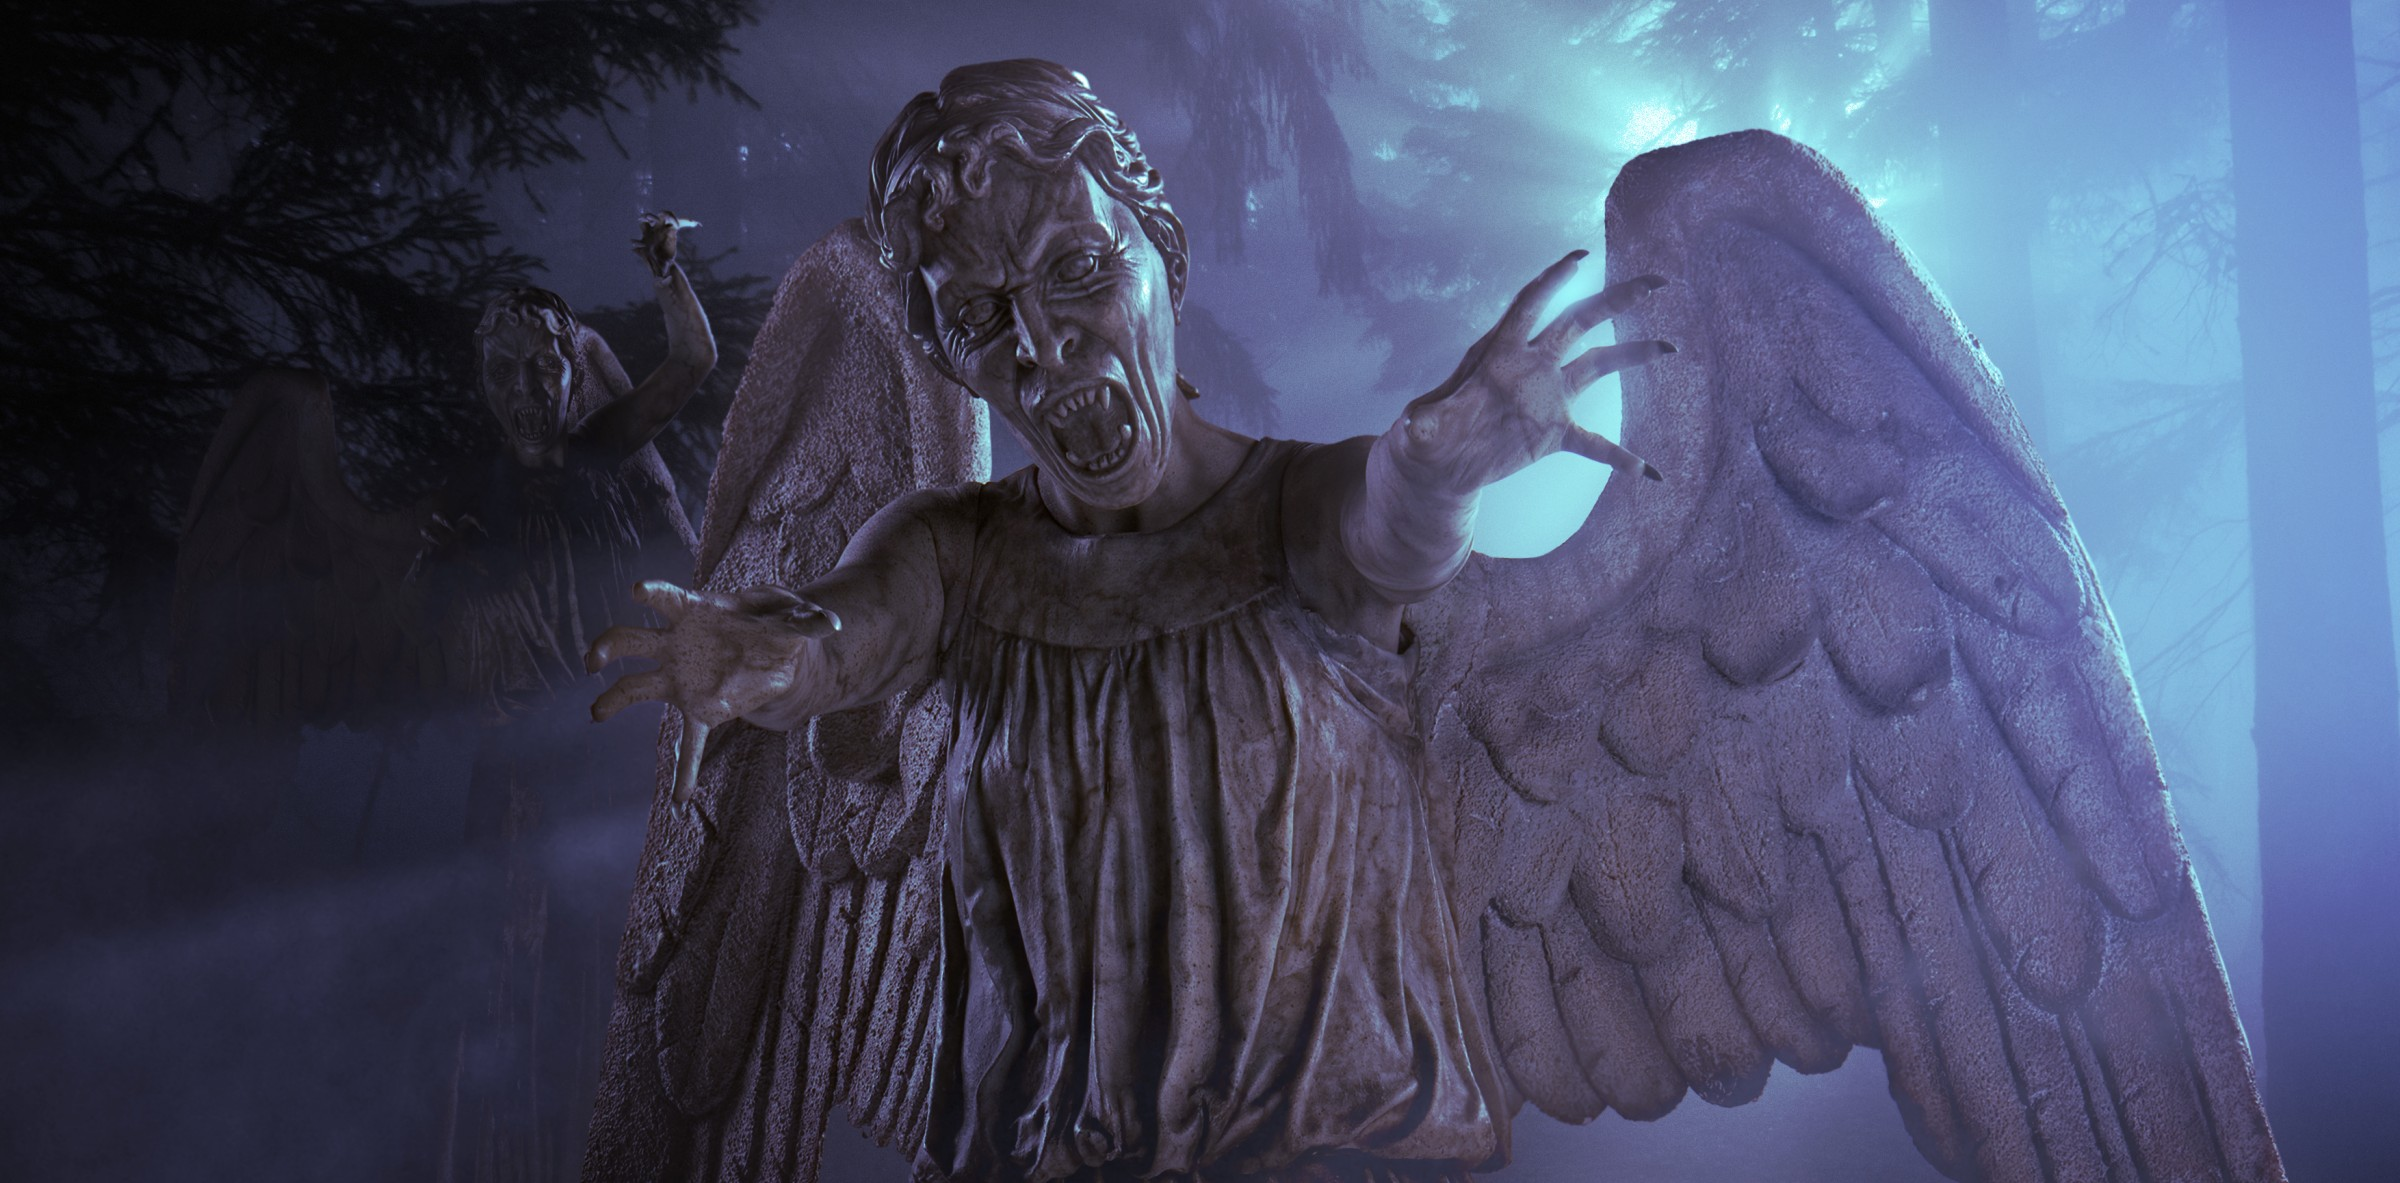 weeping angels explore doctor who